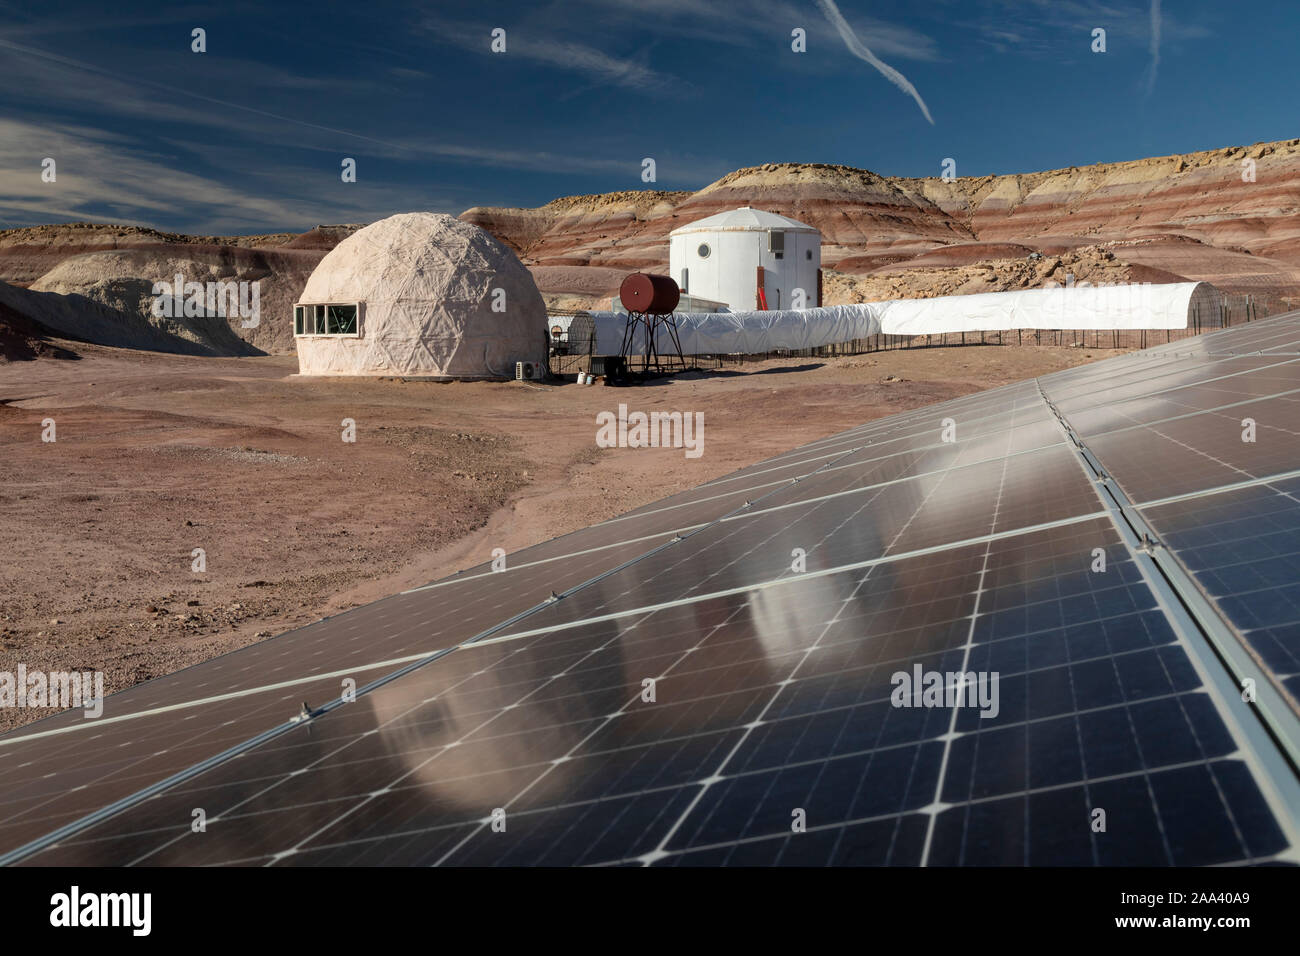 Hanksville, Utah - Researchers simulate living on Mars at the Mars Desert Research Station. A 15 kW solar system provides electricity to the station. Stock Photo